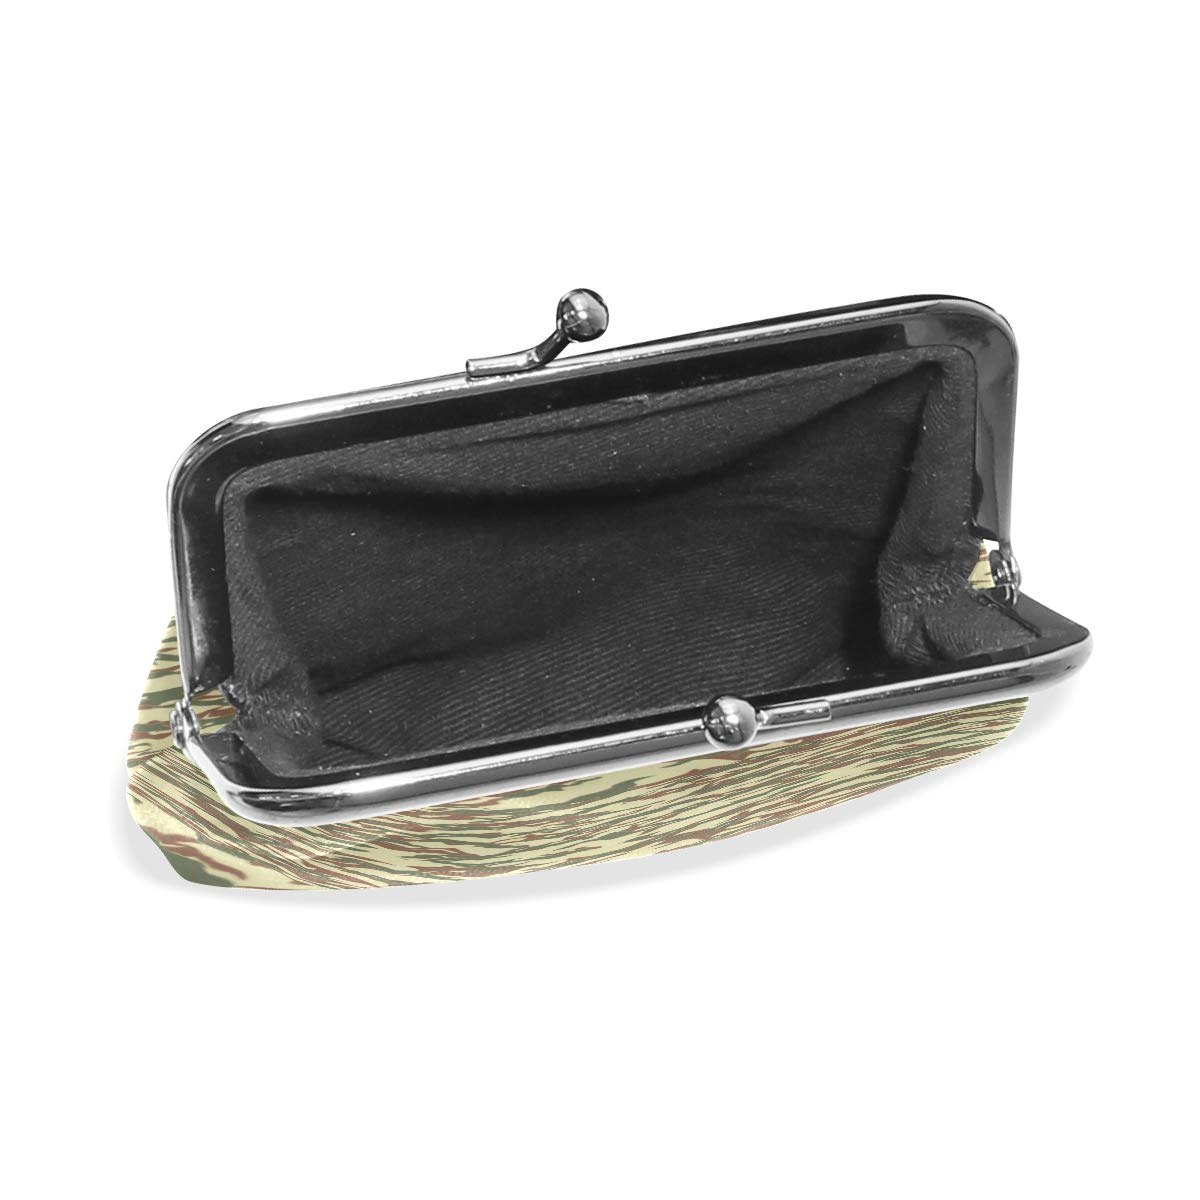 Exquisite Buckle Coin Purses Usa Army Camo Desert Mini Wallet Key Card Holder Purse for Women